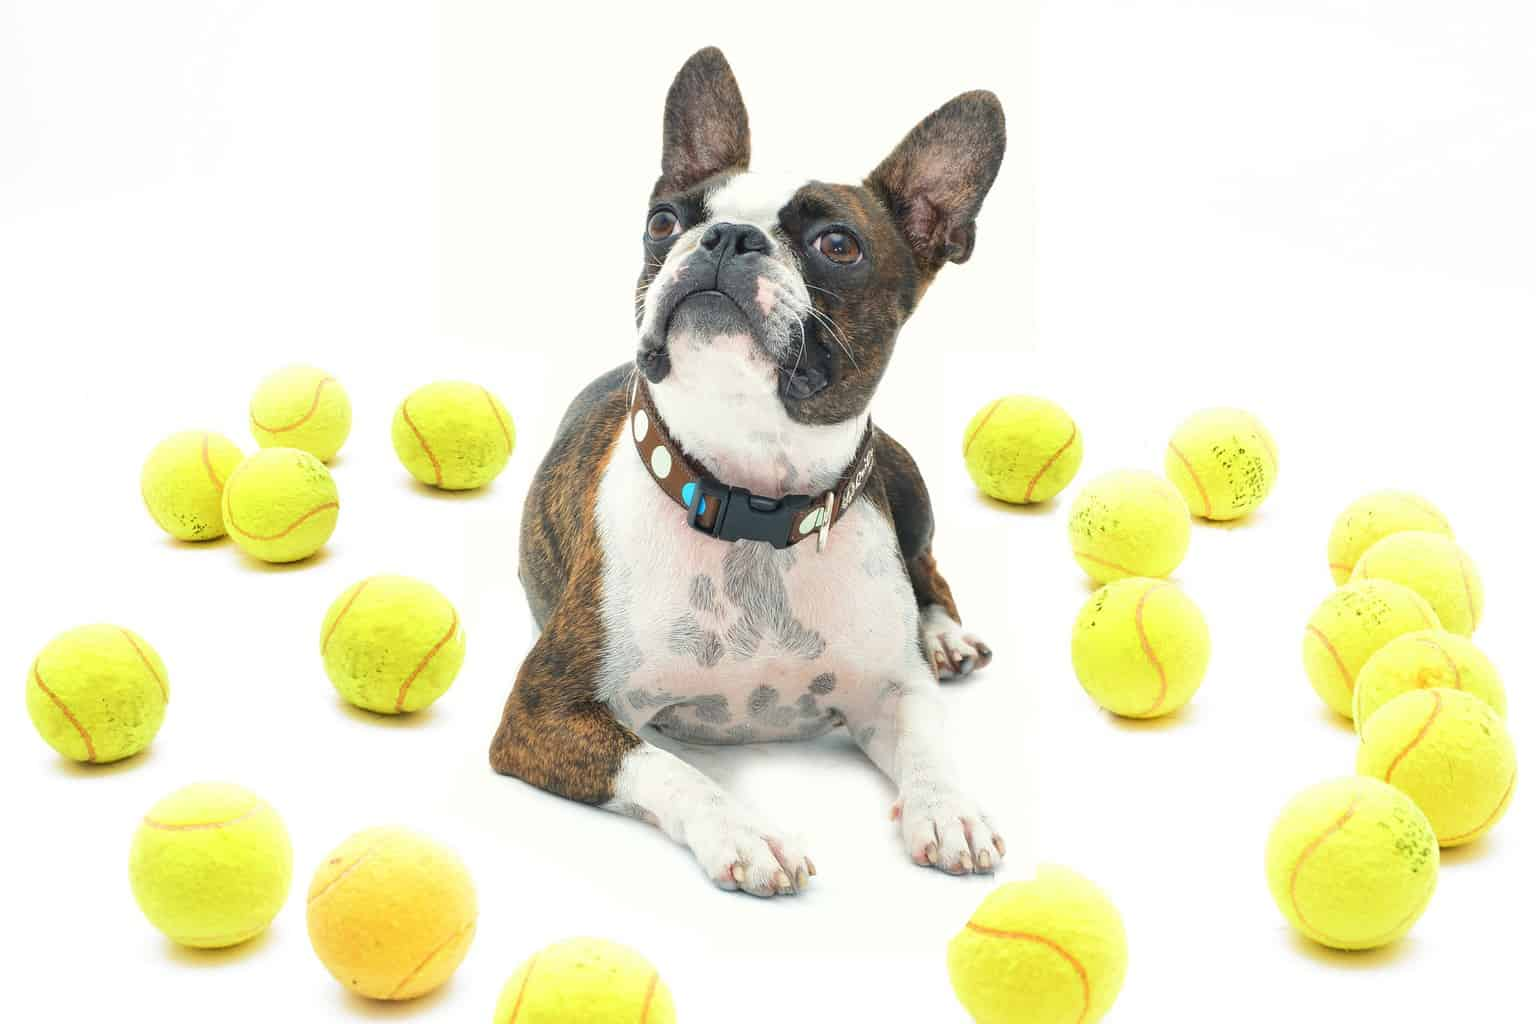 Boston Terrier surrounded by fetch toys